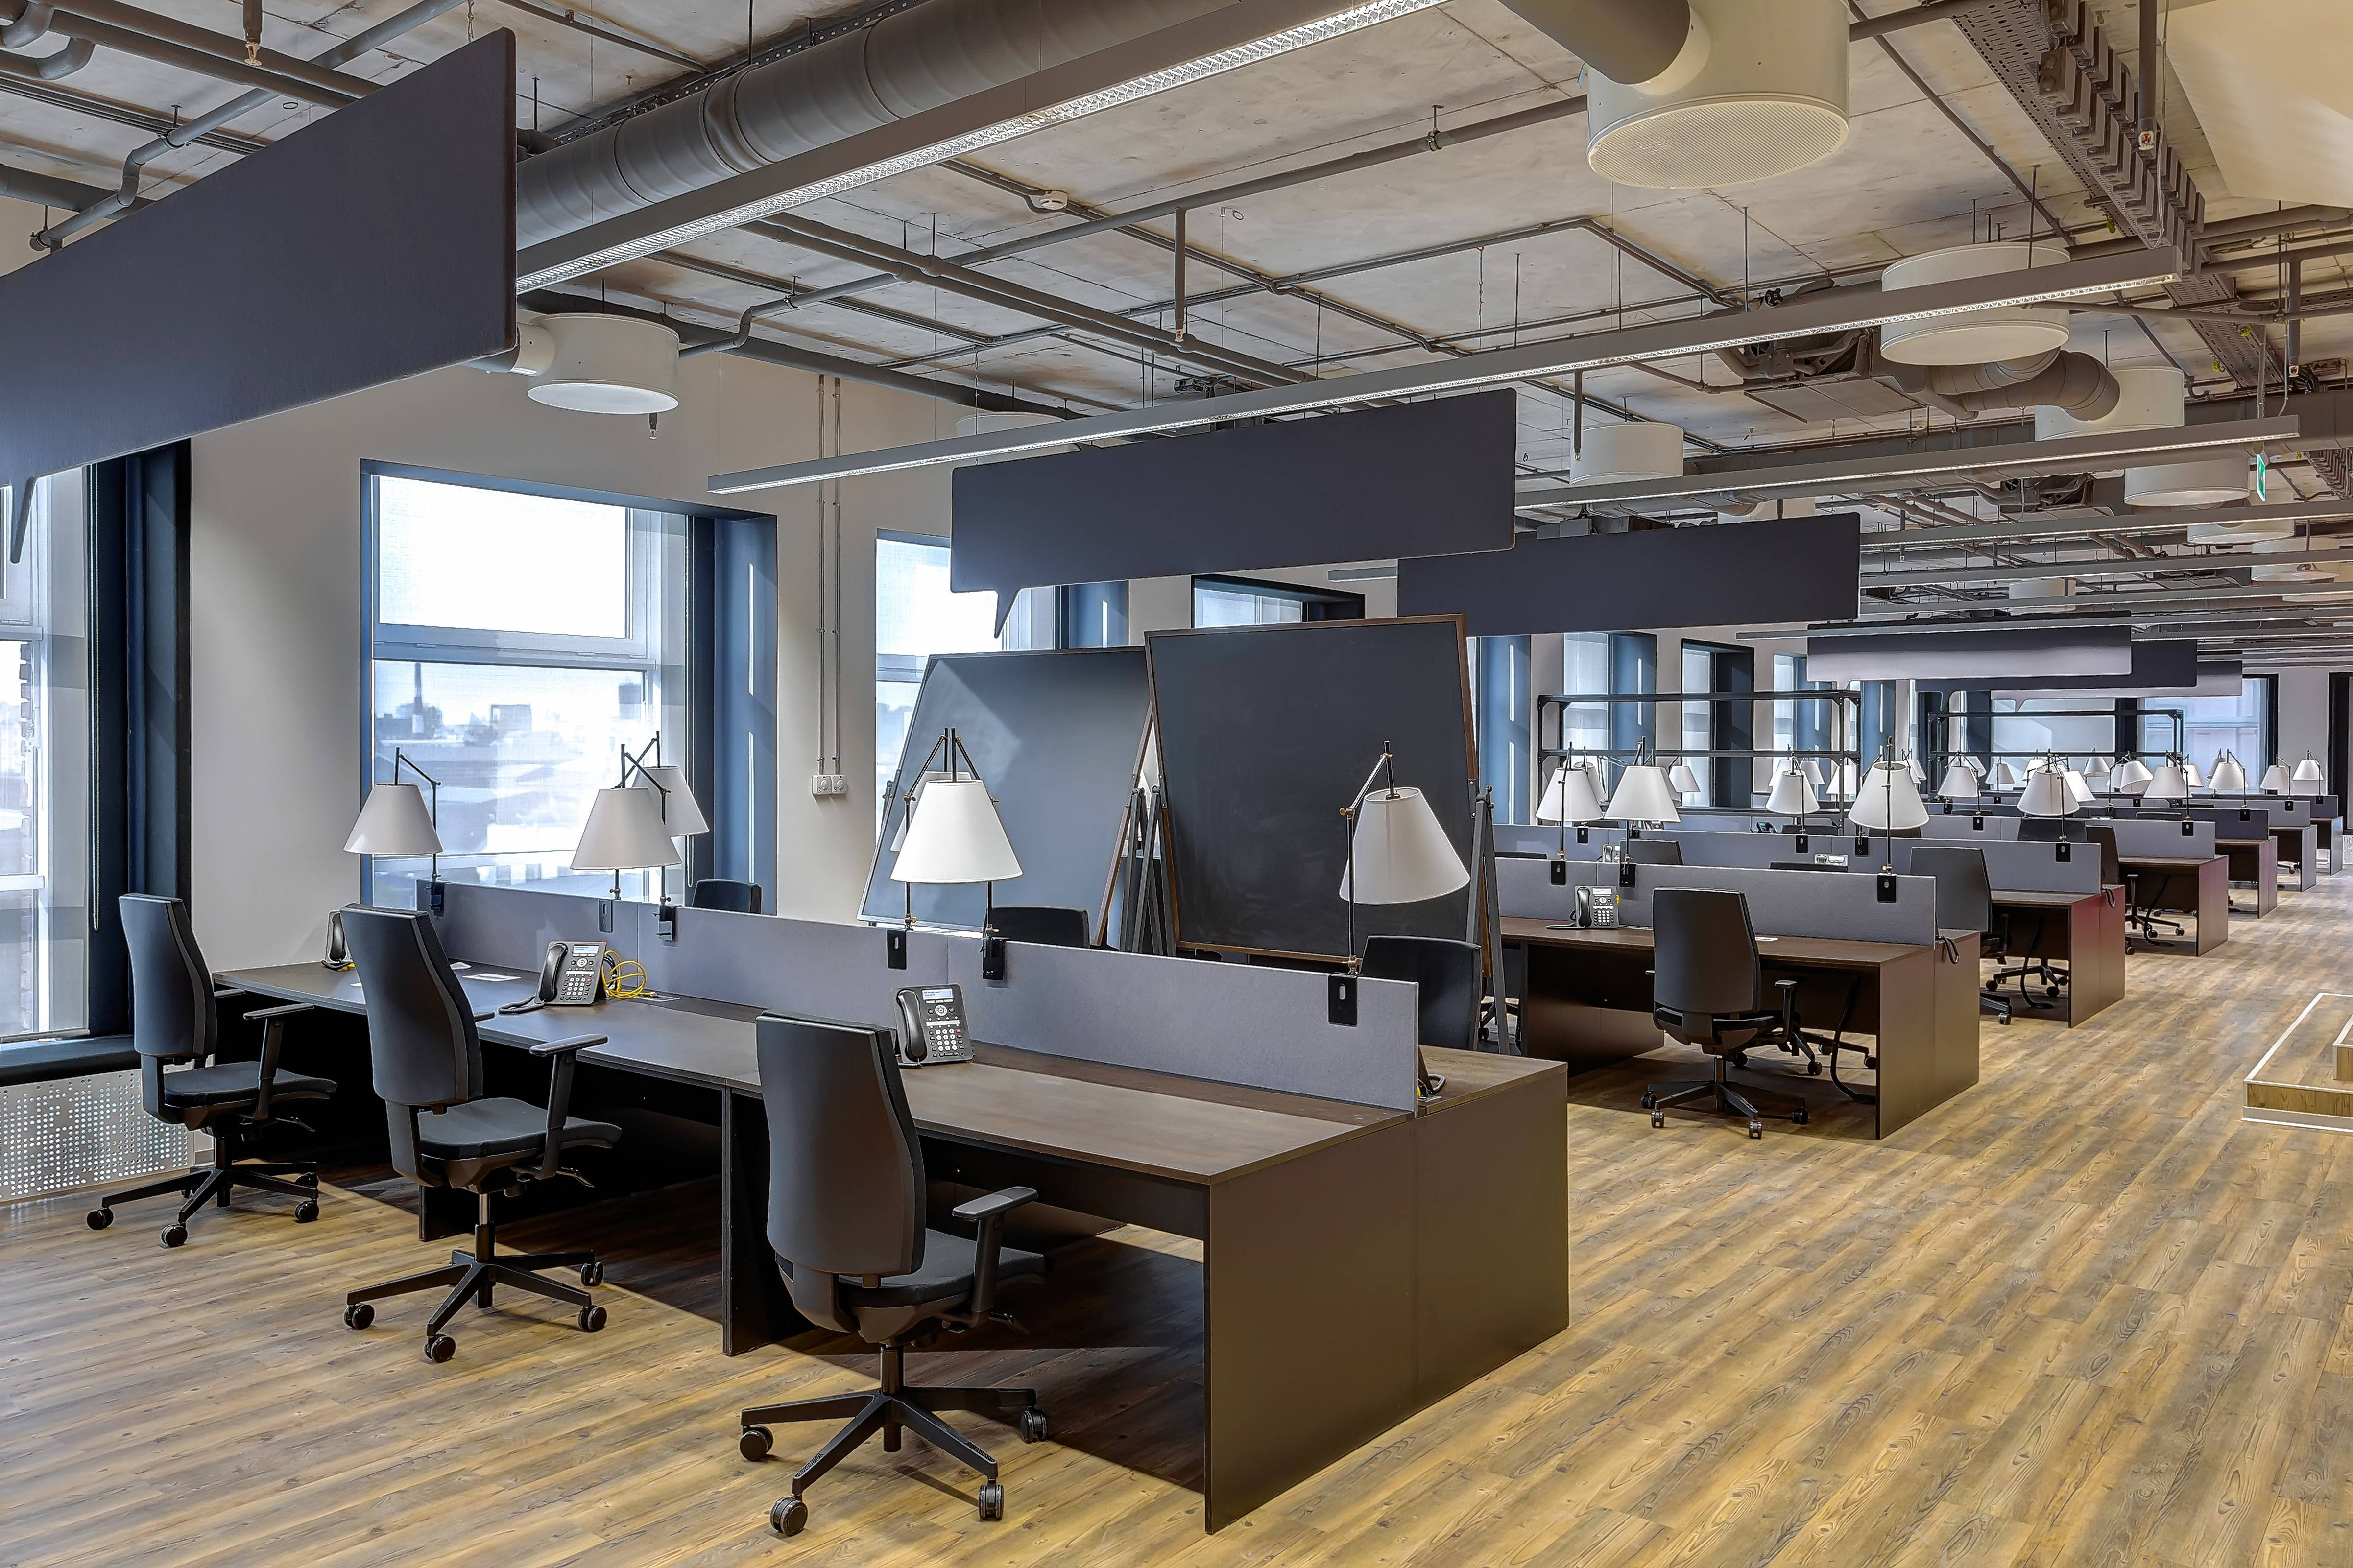 Daily Herald The Forced Togetherness Of Modern Offices May Be Sociable And Good For  Informal Brainstorming But